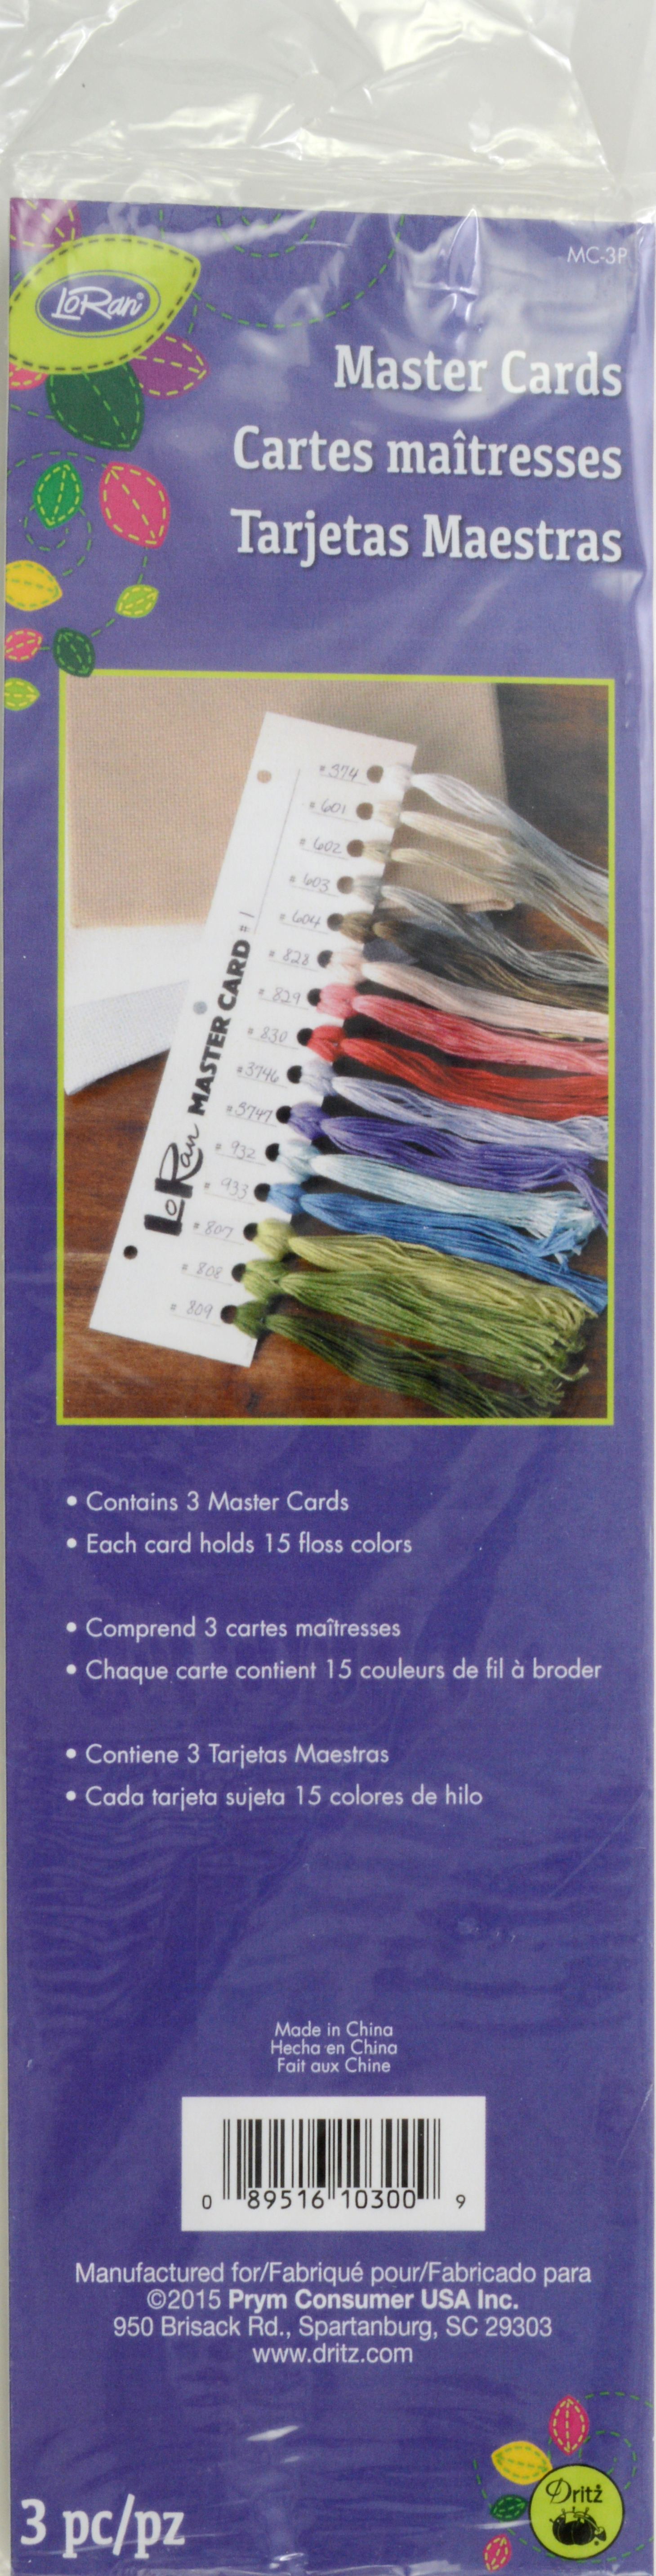 Embroidery Floss Master Cards